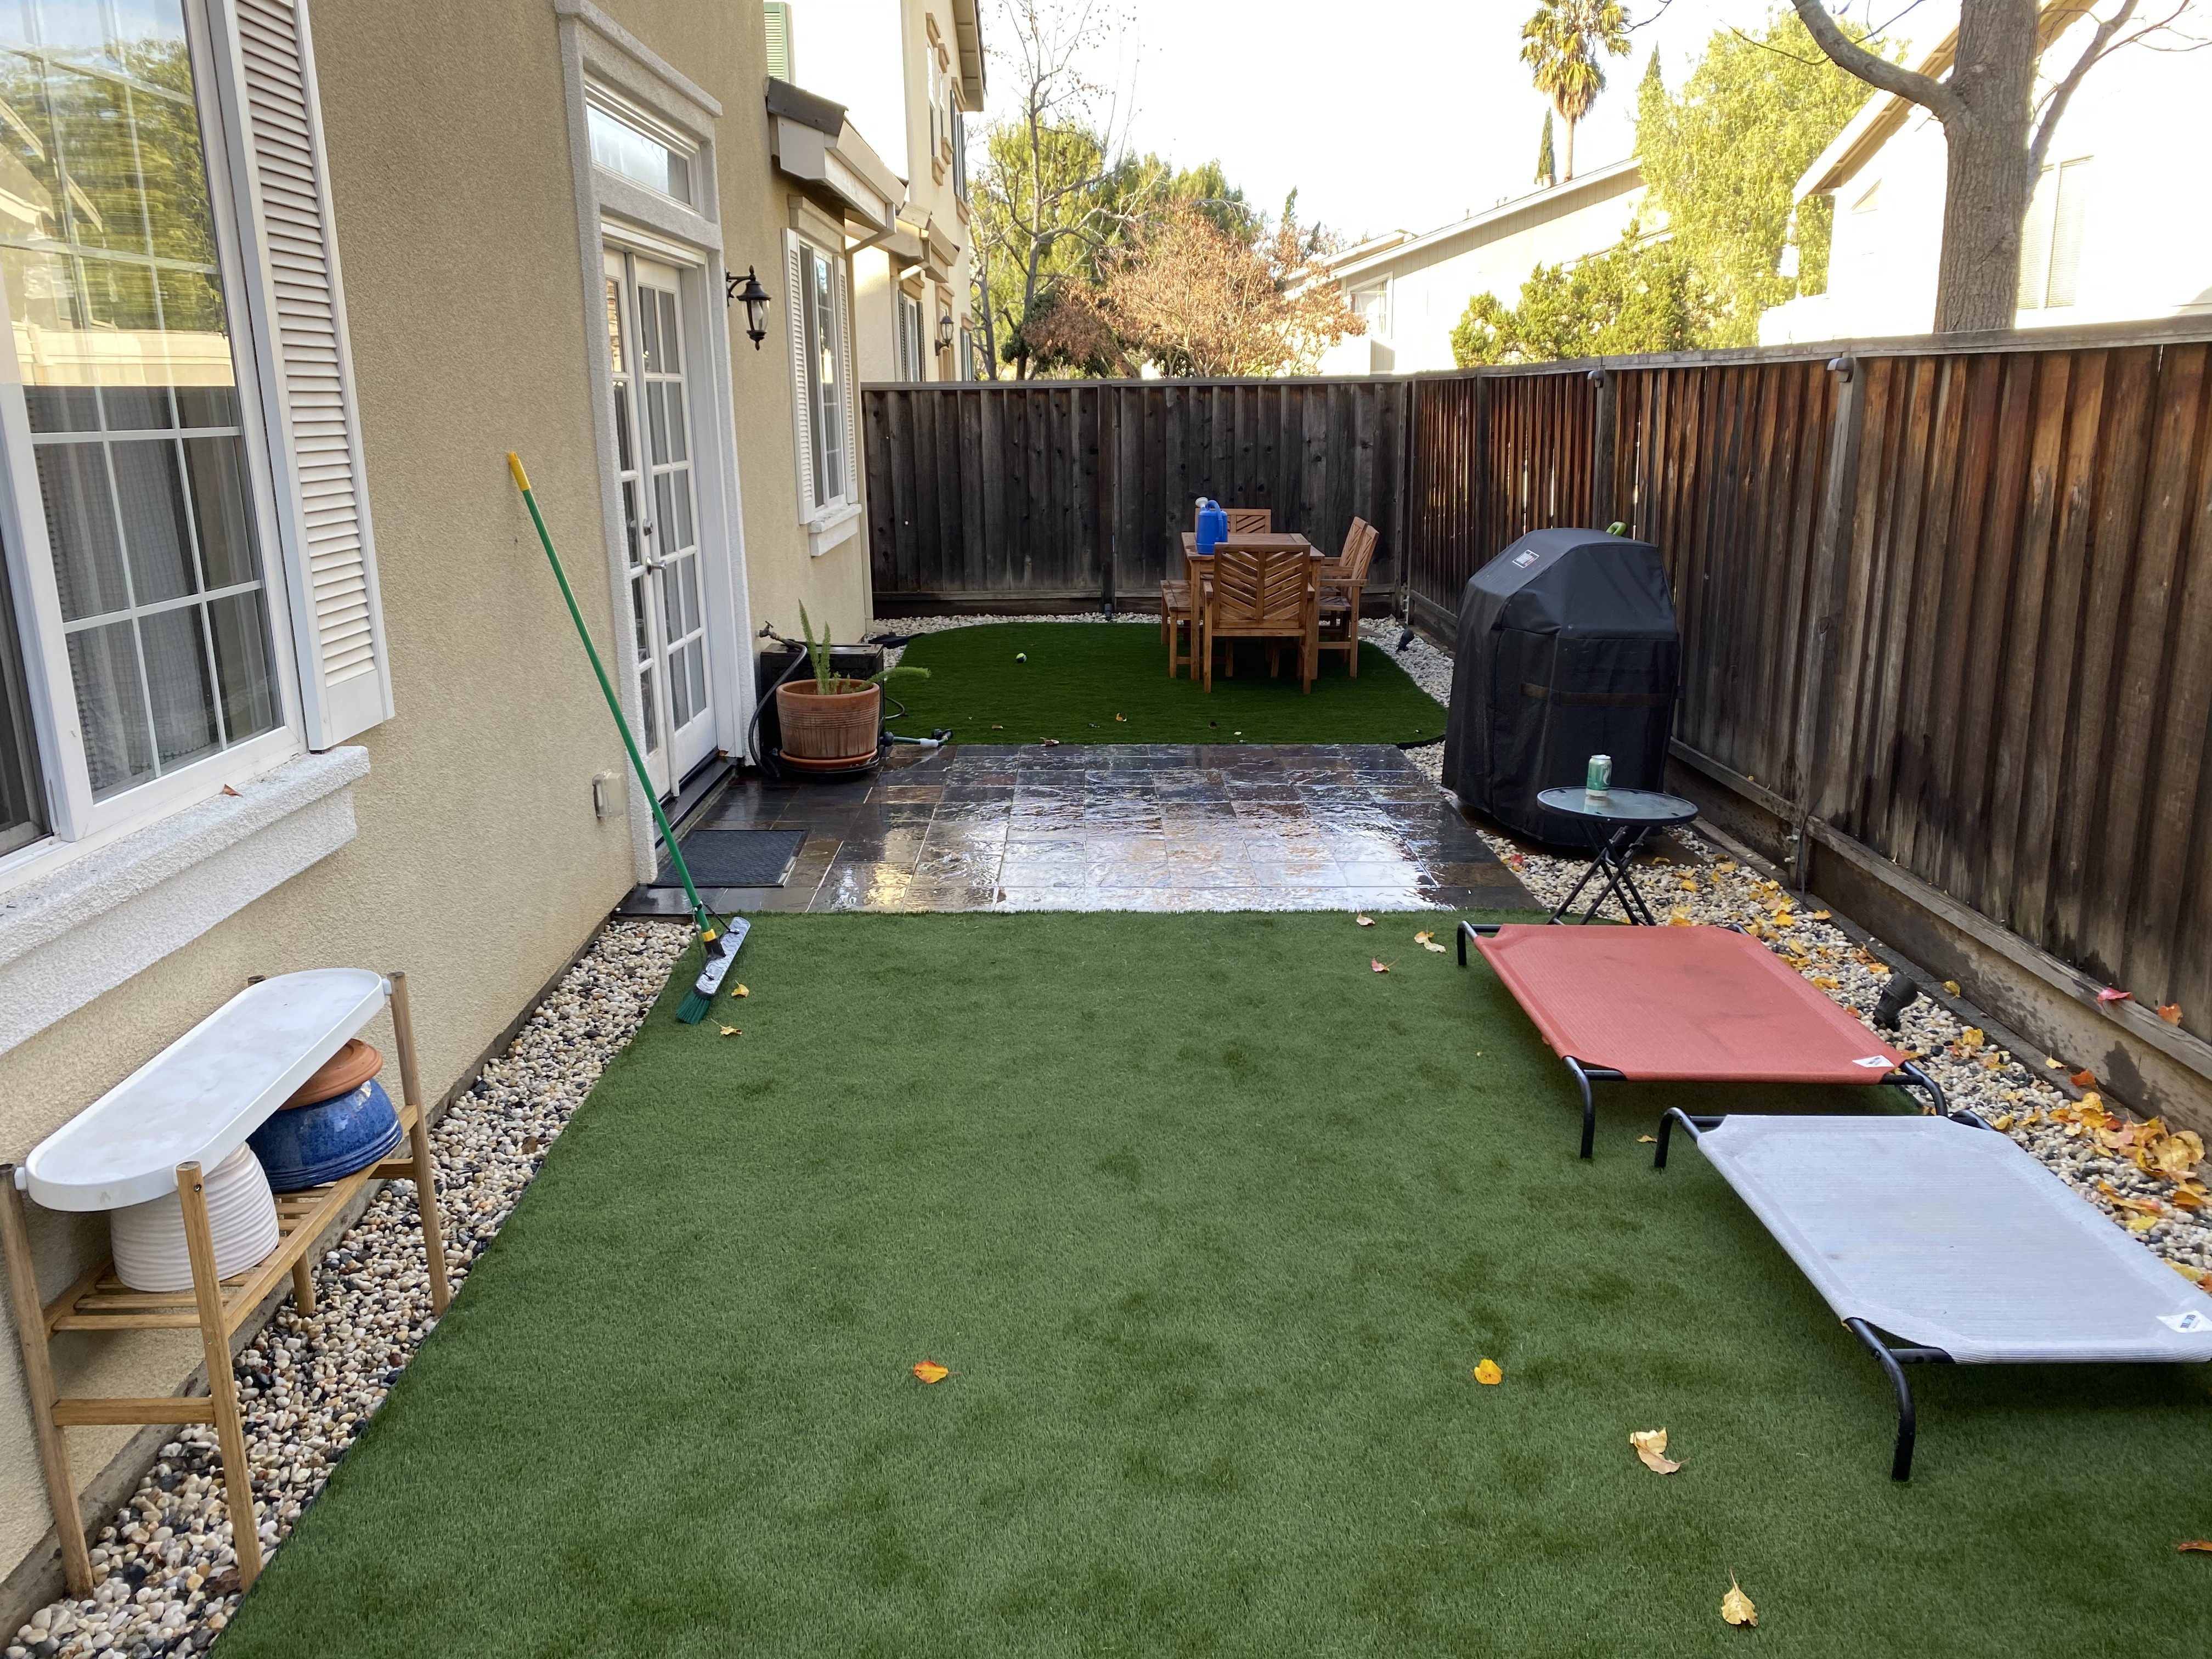 Renovated my small back yard to make it more dog and kid friendly